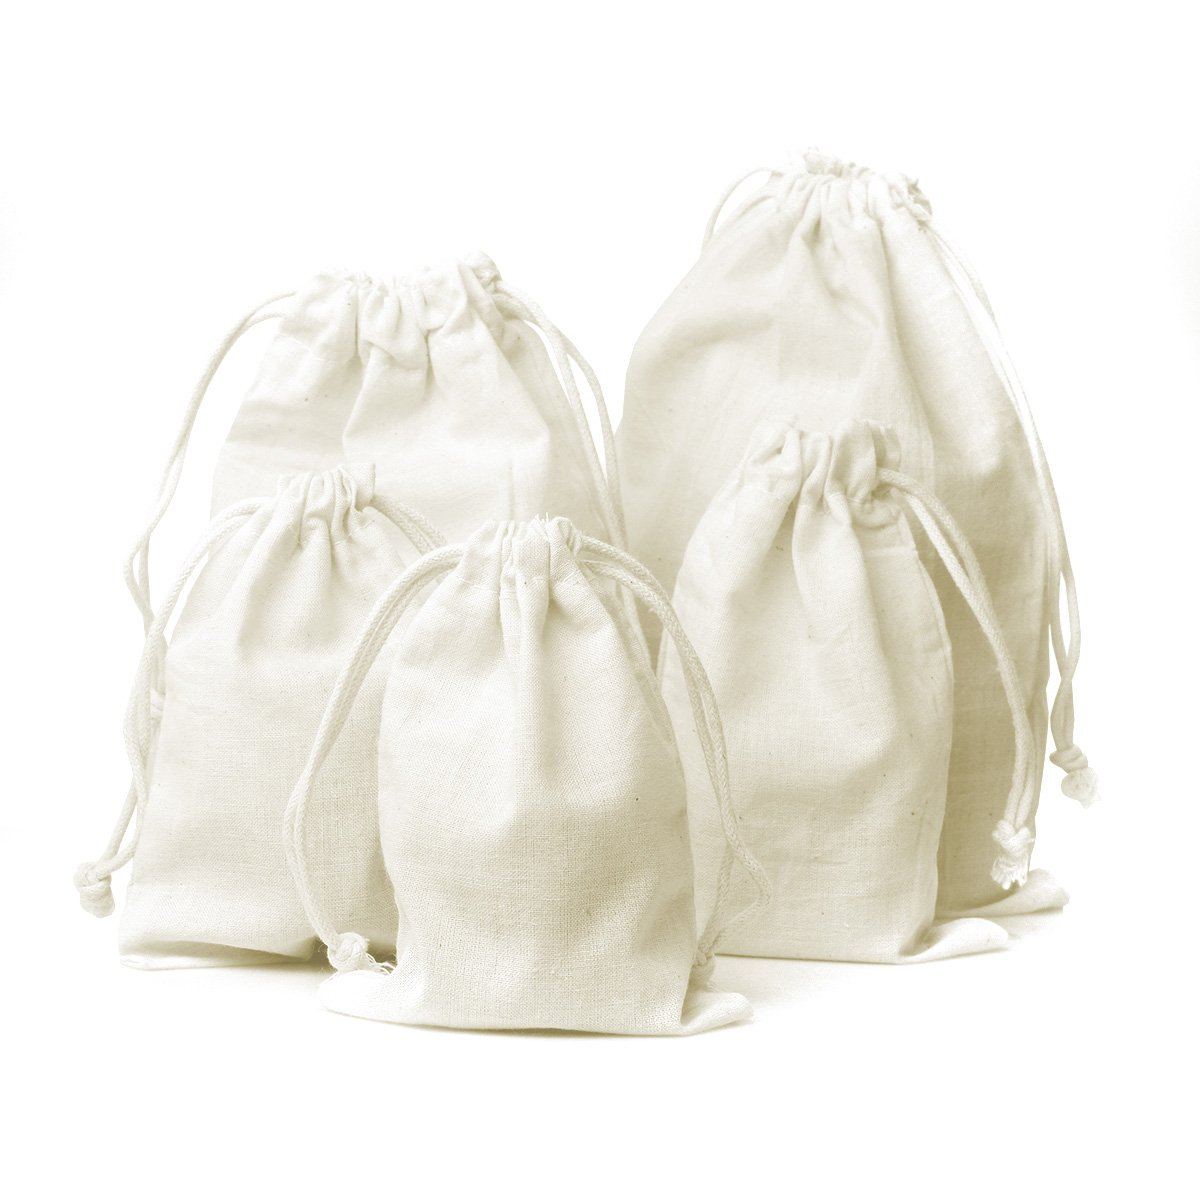 Linen and Bags 4'' x 6'' Natural Cotton Muslin High Quality Drawstring Bags Multipurpose 25 Count Pack